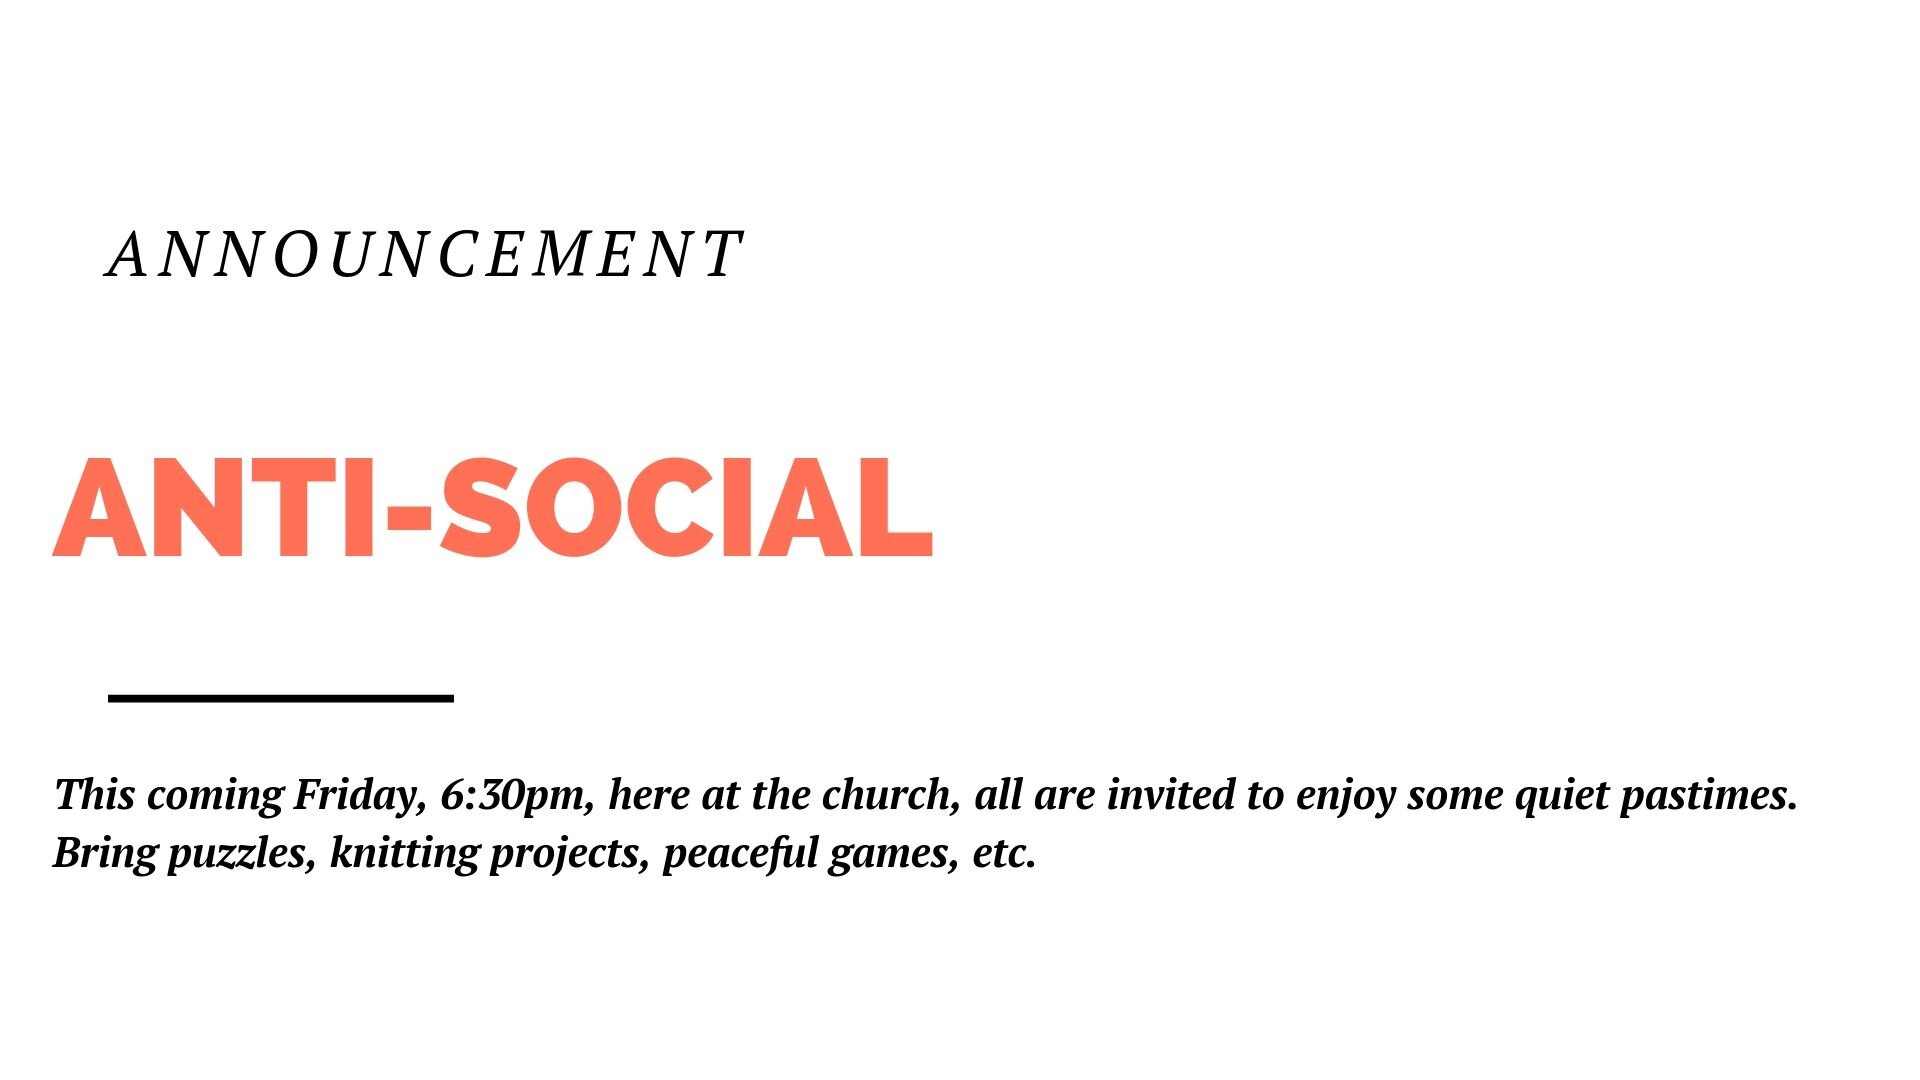 This coming Friday, 6:30pm at the church, all are invited to enjoy some quiet pastimes. Bring puzzles, knitting projects, peaceful games, etc. Come meet some other people who'd rather not go clubbing.